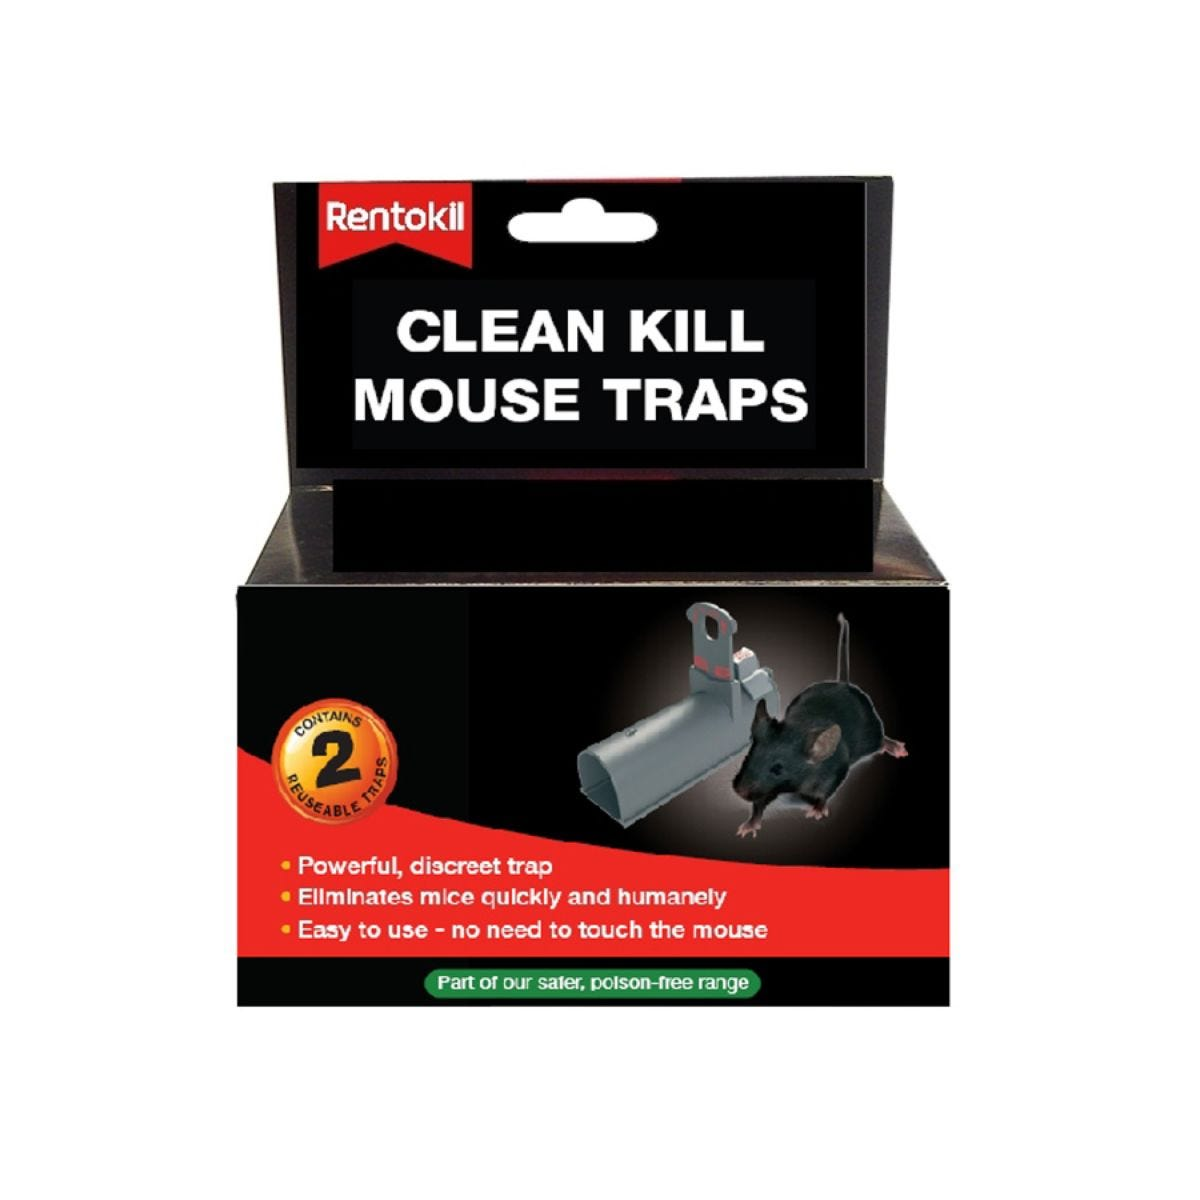 Rentokil Clean Kill Mouse Traps – Pack of 2